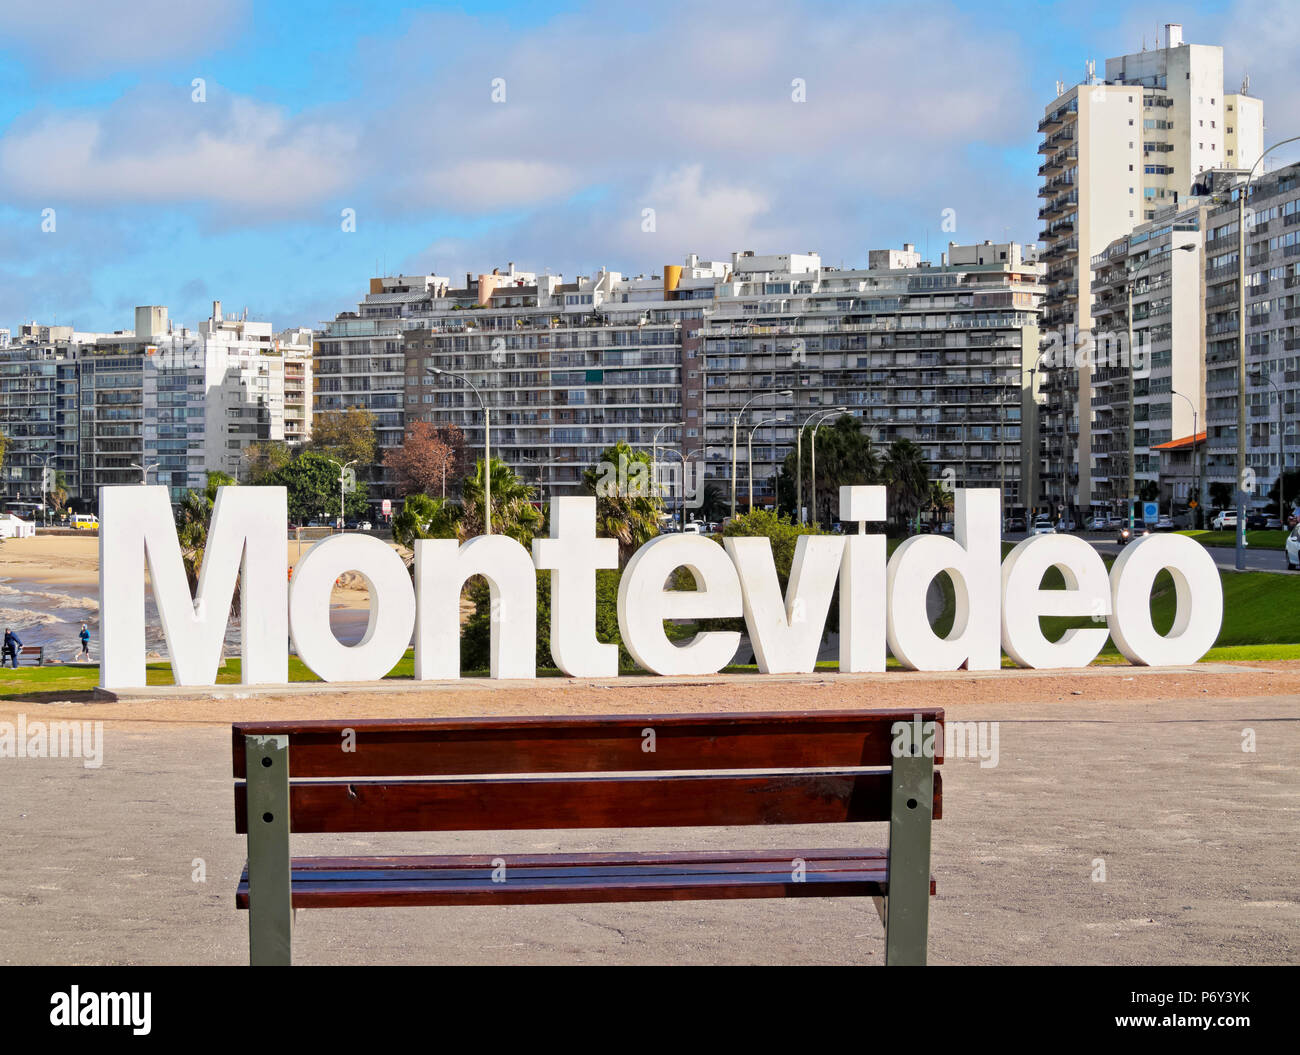 Uruguay, Montevideo, Pocitos, View of the Montevideo Sign. - Stock Image